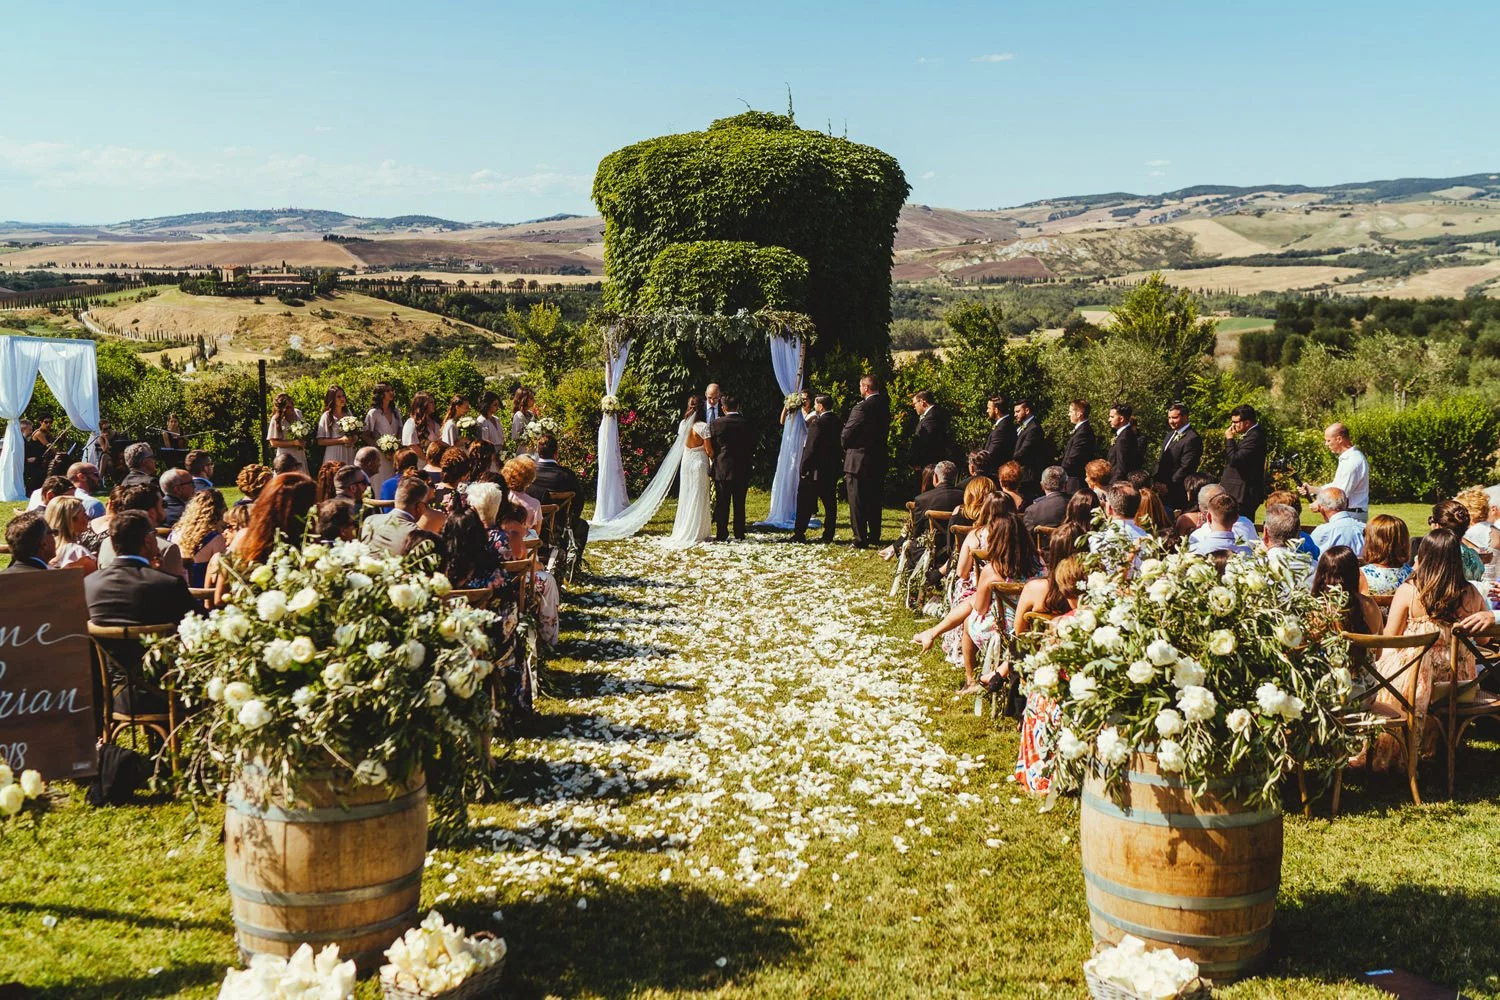 A bride and groom being married at a popular wedding venue in Italy, Borgo Di Castelvecchio, while Magic Wedding Photographer captures the moment.